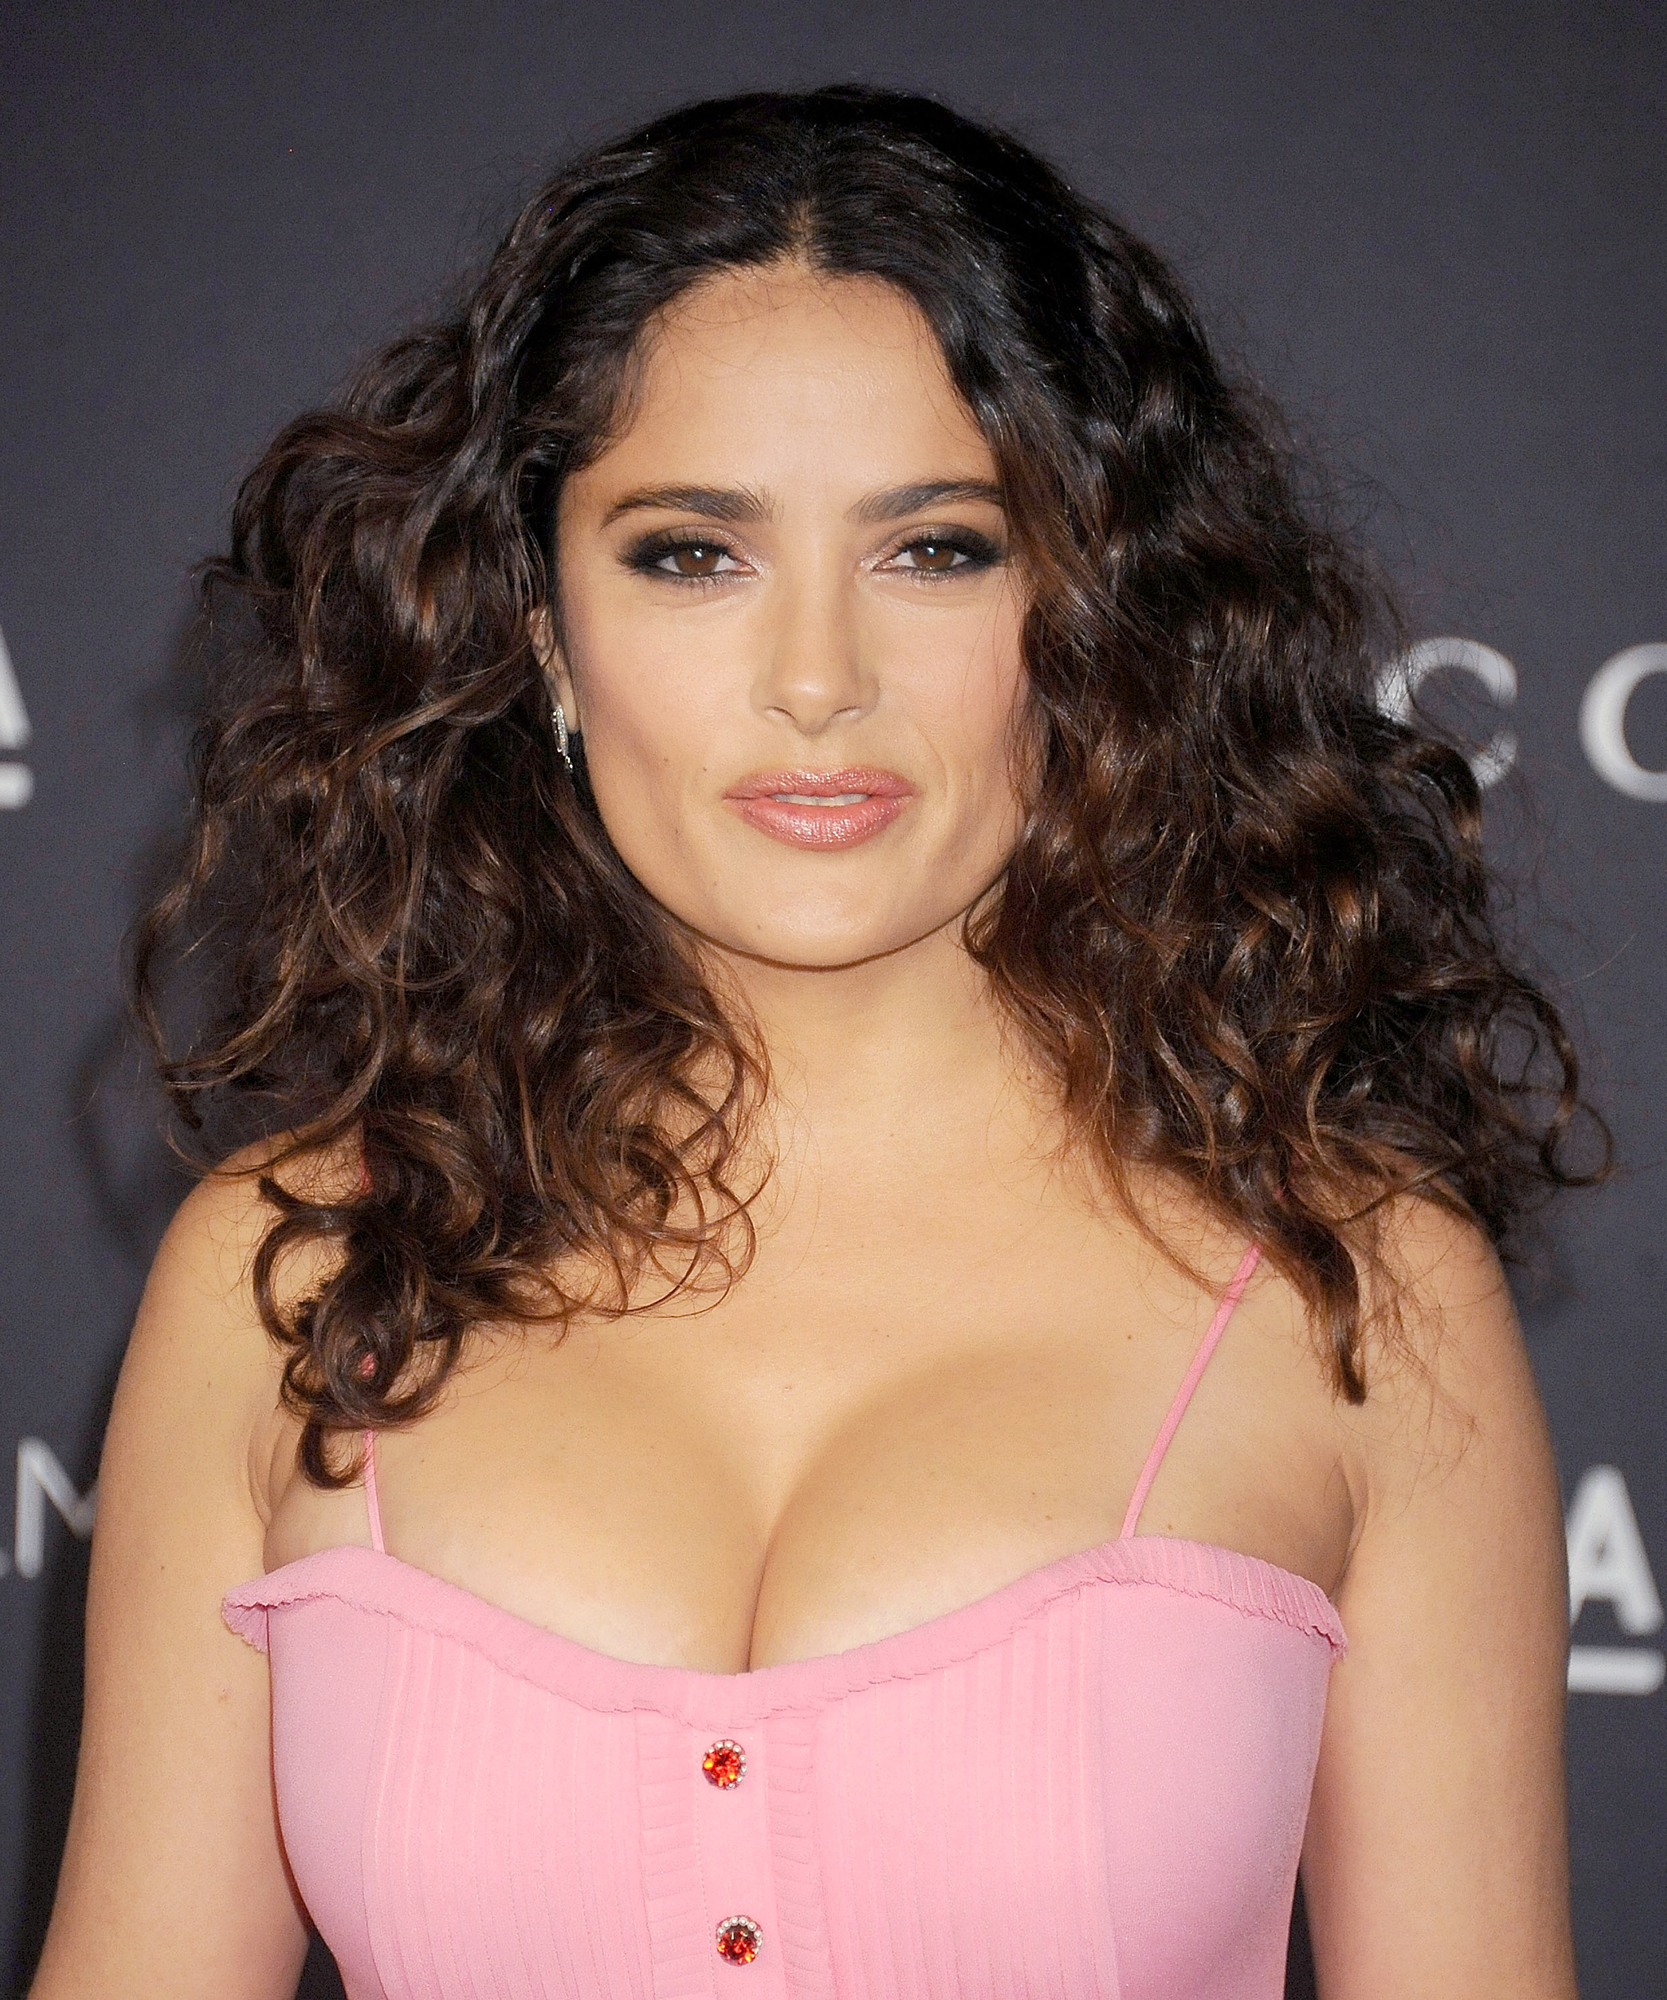 Actress Salma Hayek arrives at the LACMA 2015 Art+Film Gala Honoring James Turrell And Alejandro G Inarritu, Presented By Gucci at LACMA on November 7, 2015 in Los Angeles, California.